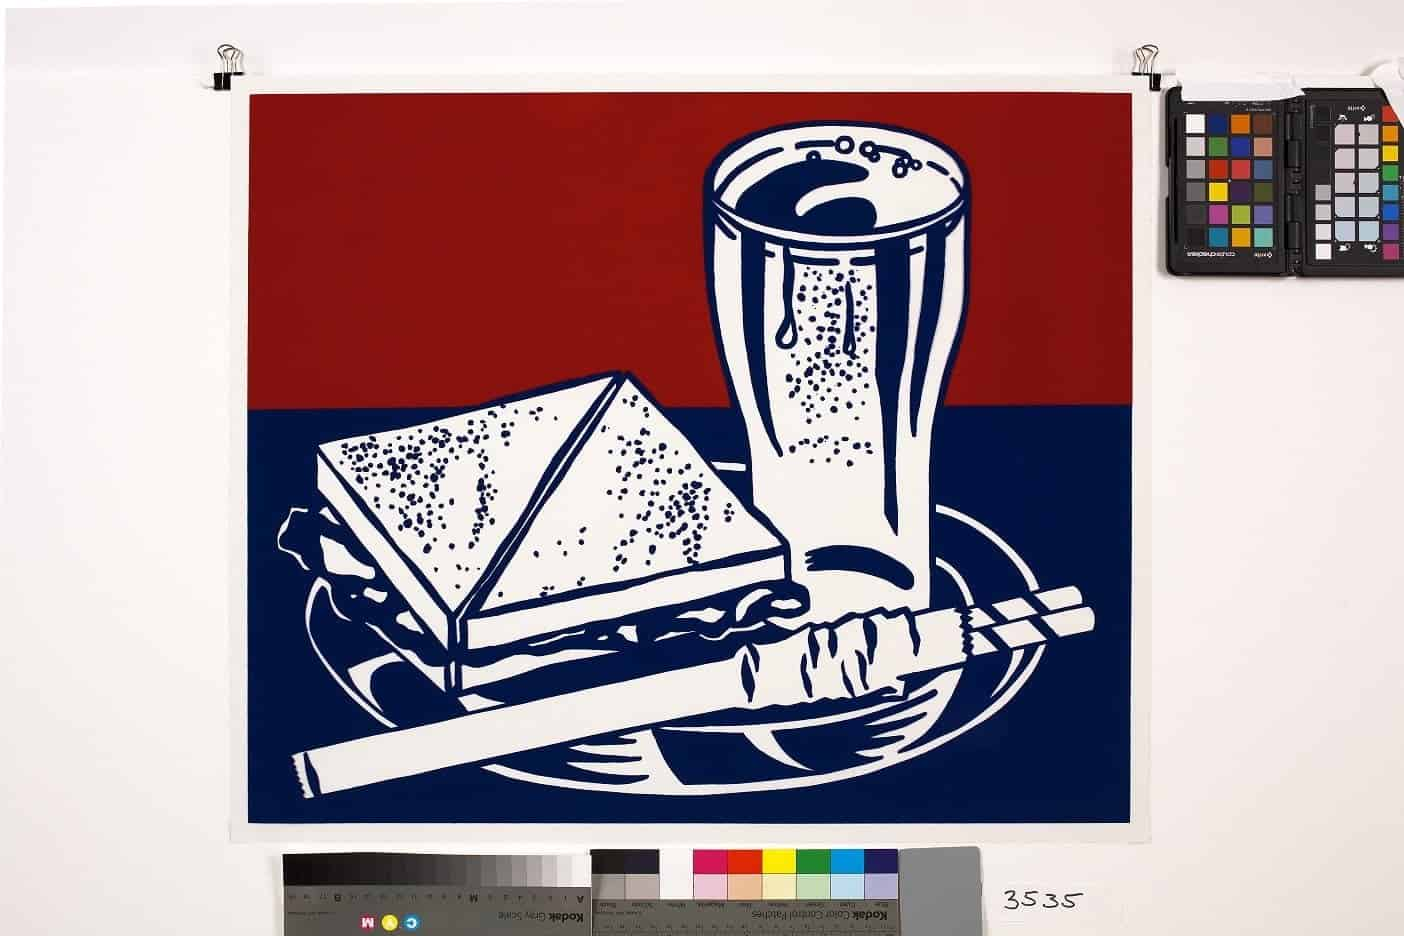 Roy Lichtenstein – Sandwich and Soda, 1964